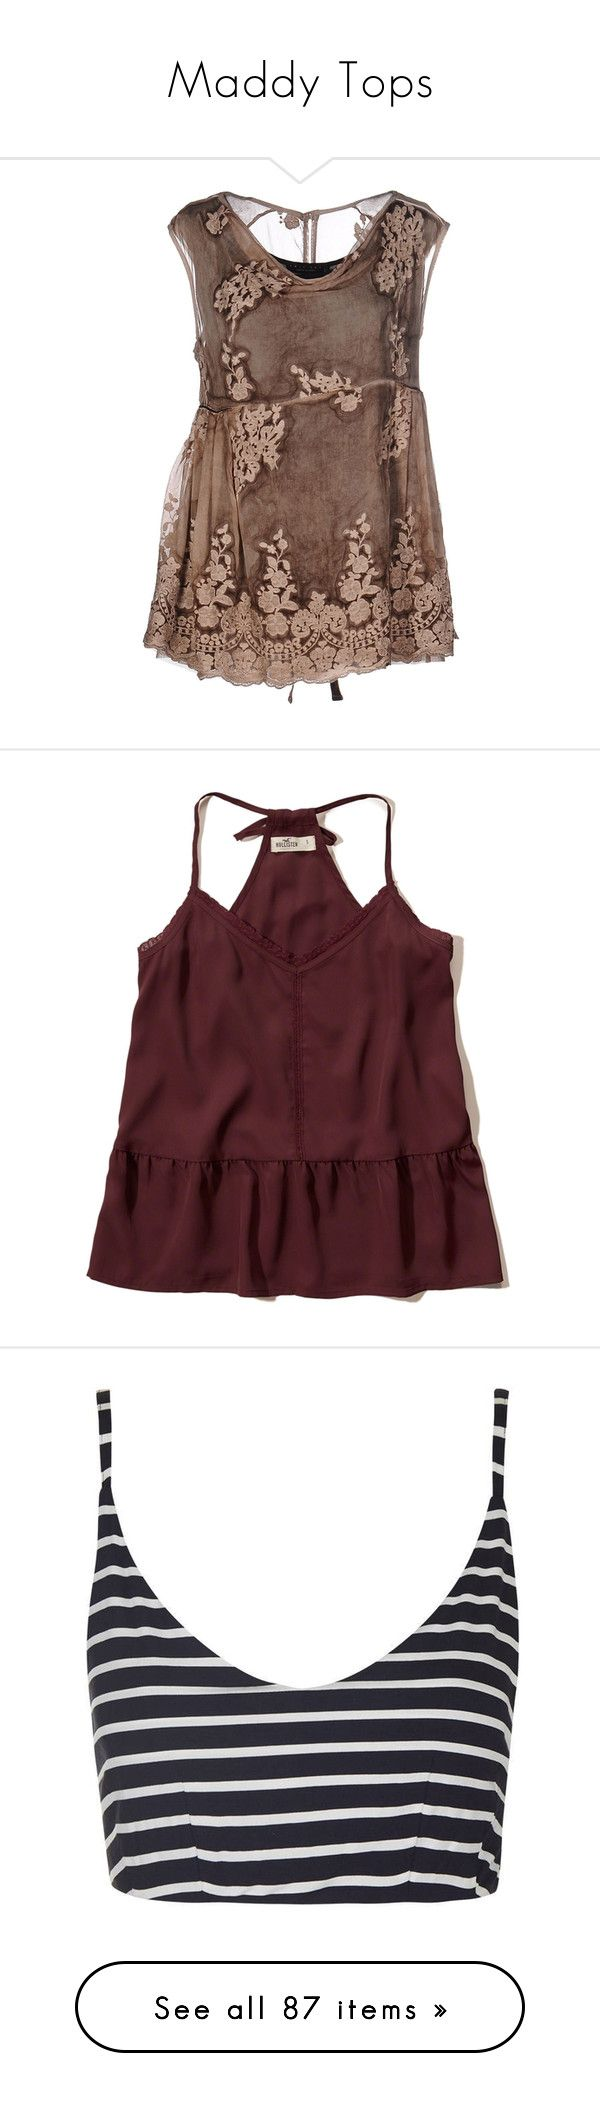 """""""Maddy Tops"""" by kleinesbiest ❤ liked on Polyvore featuring camel, hollister, tops, burgundy, lace trim cami, strappy cami, lace trim camisole, red cami, red camisole and crop tops"""